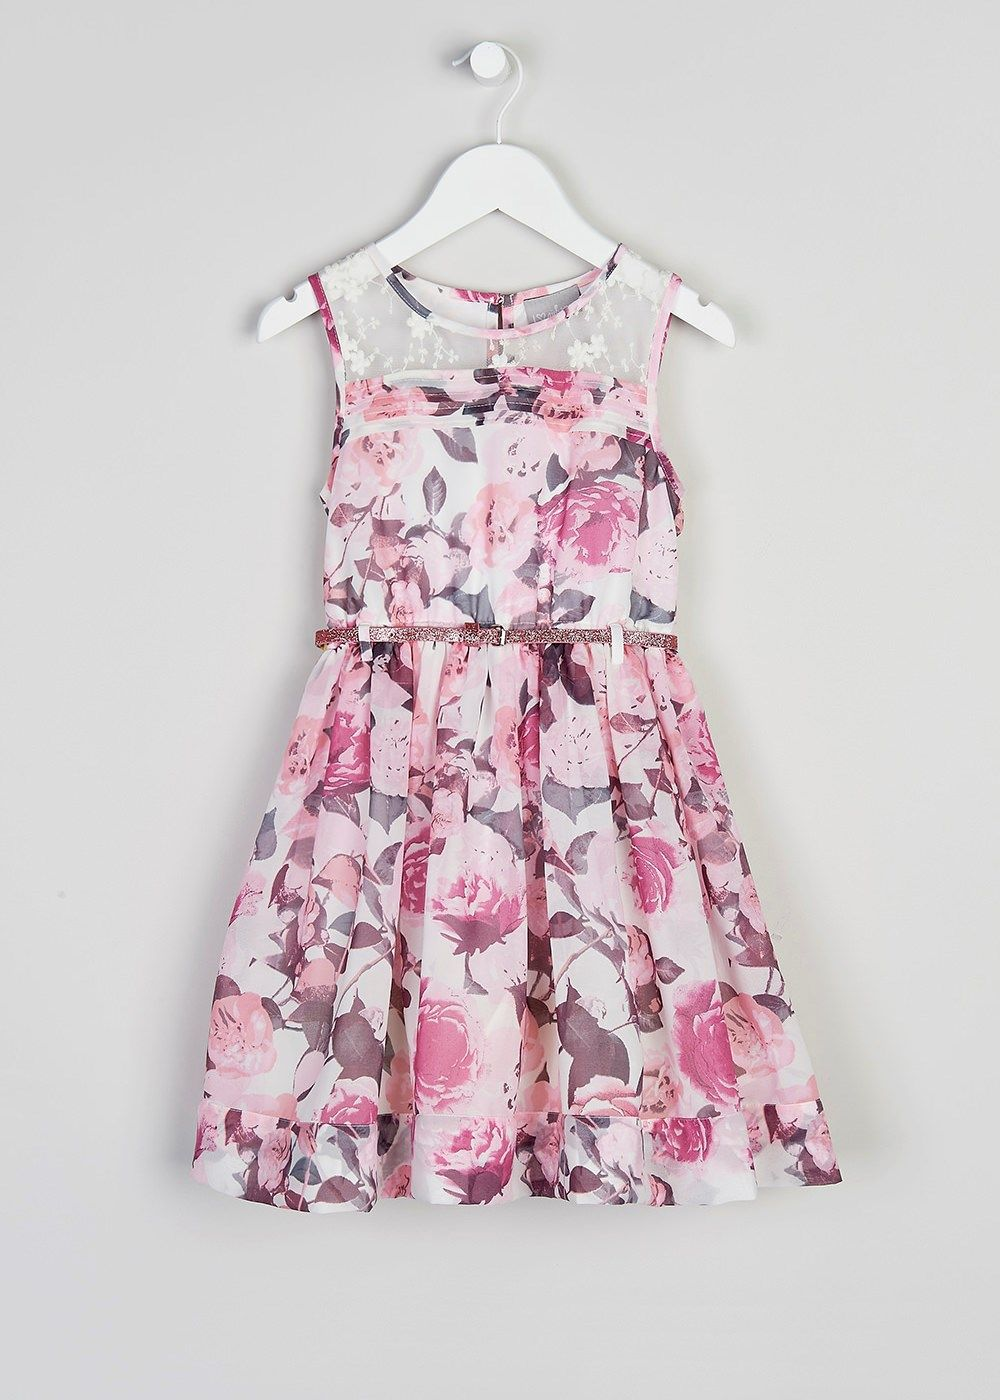 ad3f6c52e3a54 Girls Dress and Belt (3-13yrs) - Matalan | Girlswear | Dresses ...